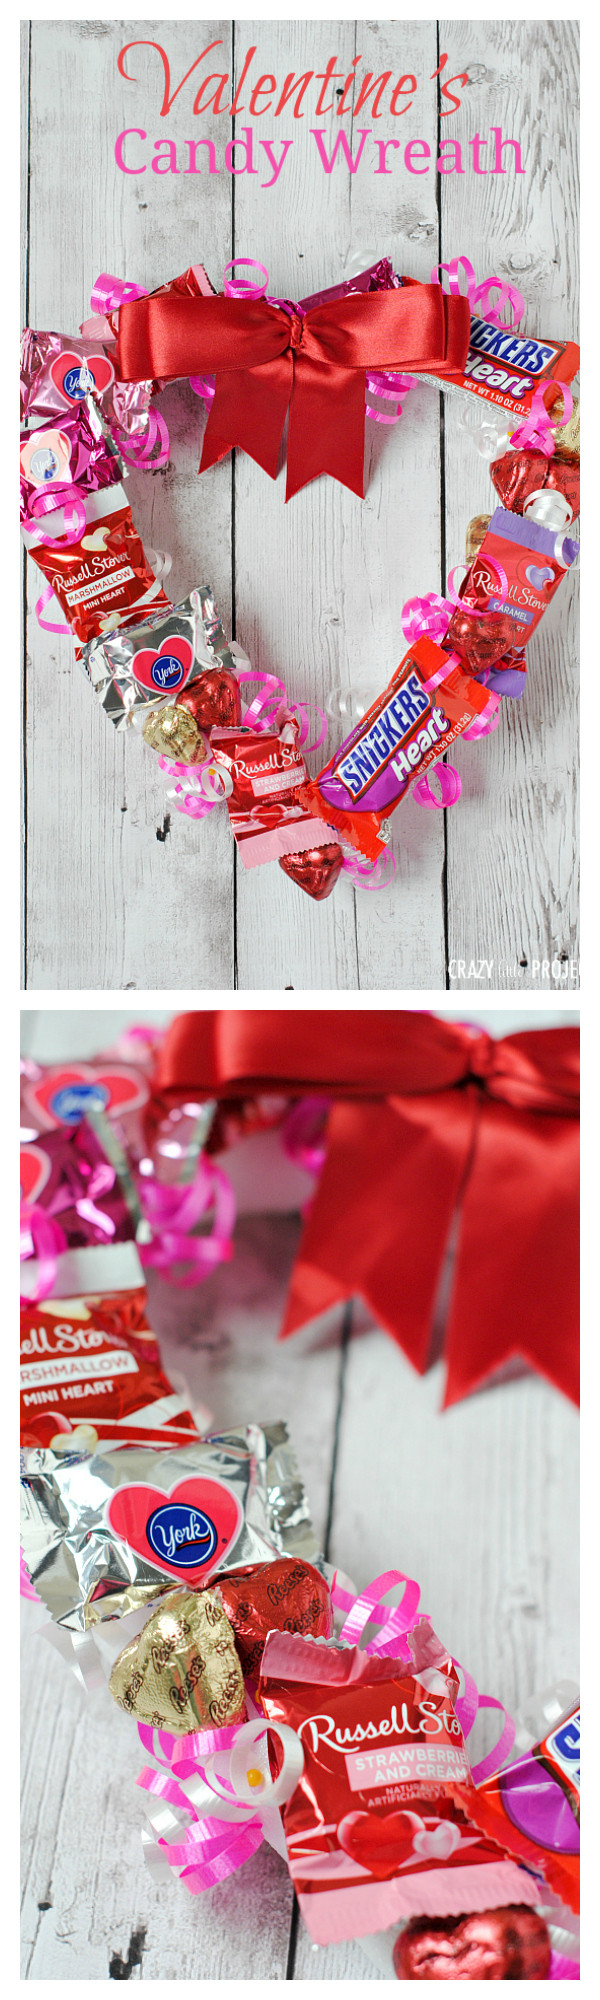 Valentines Candy Gift Ideas  Valentine s Candy Wreath Crazy Little Projects